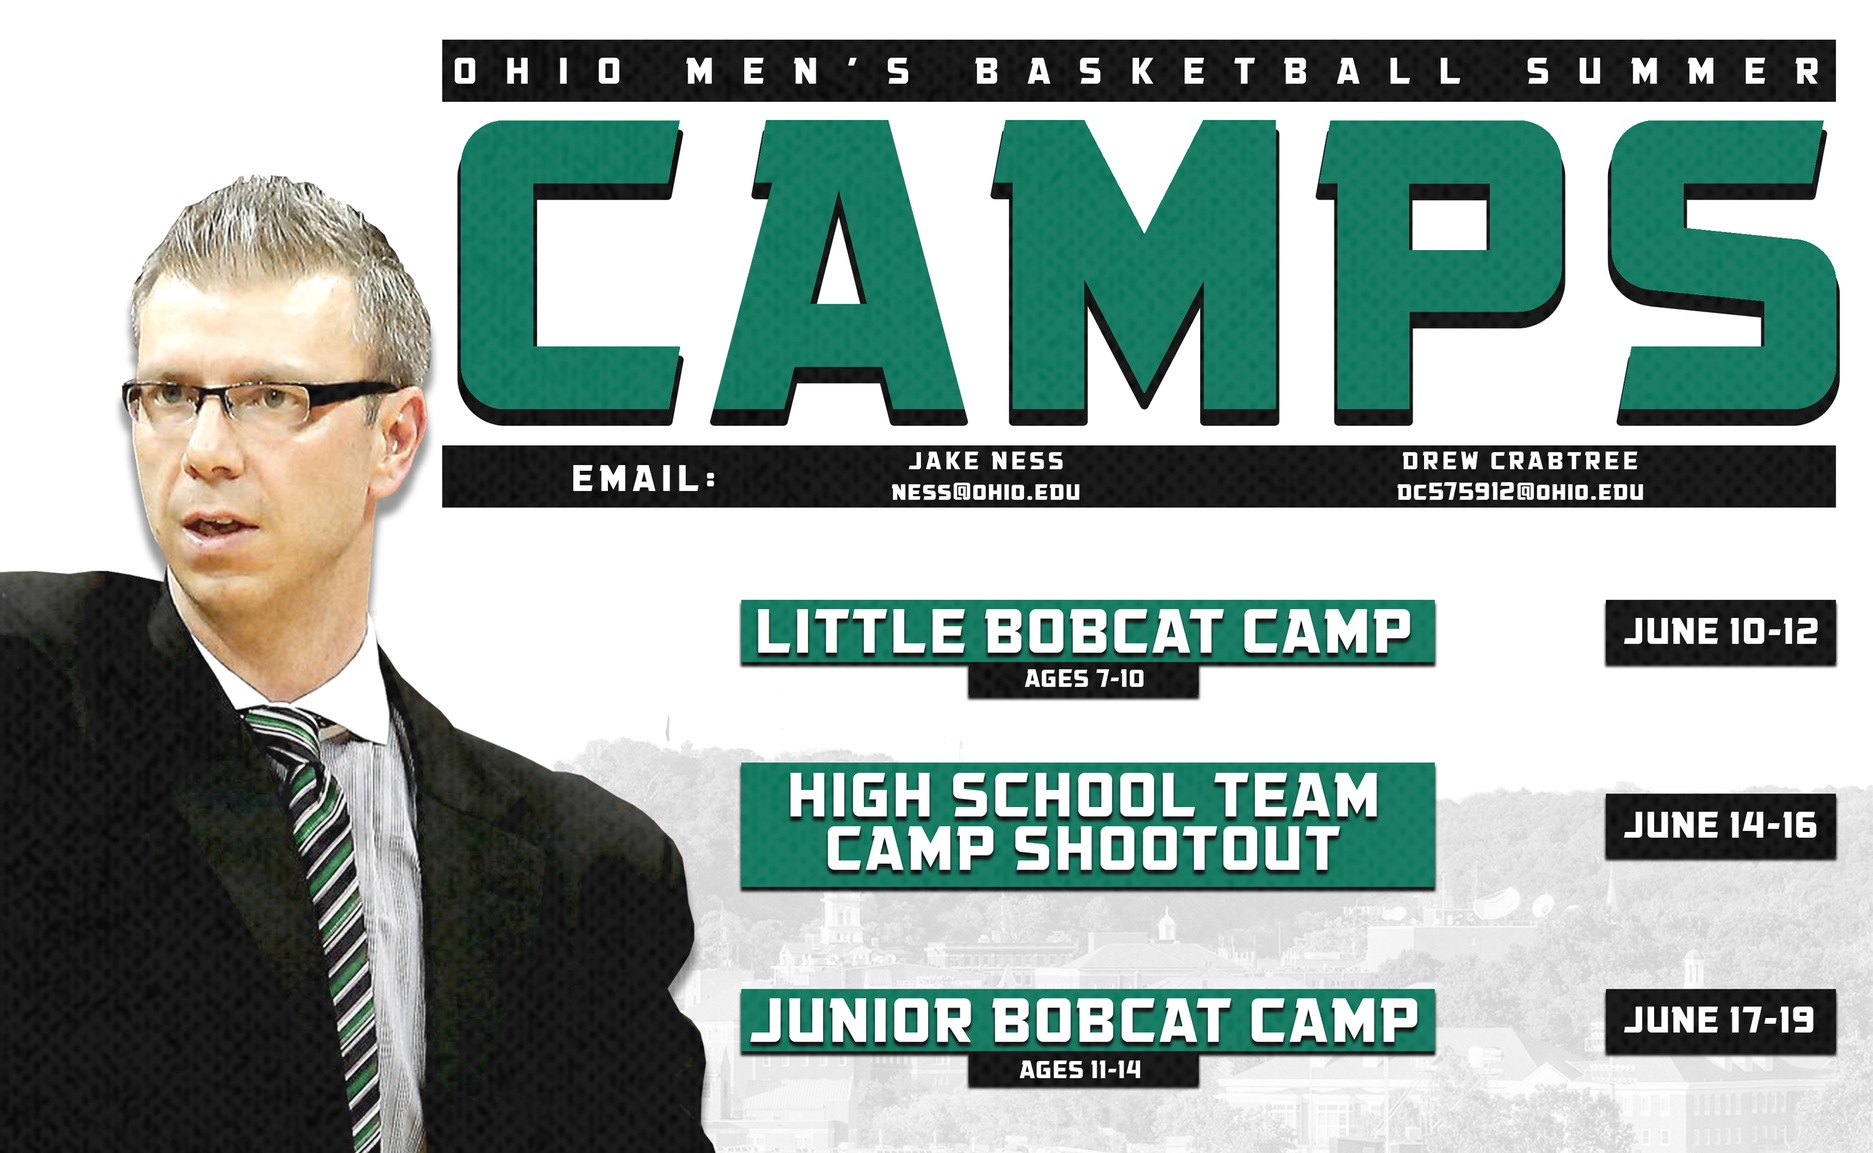 Ohio Men's Basketball to Hold Summer Camps